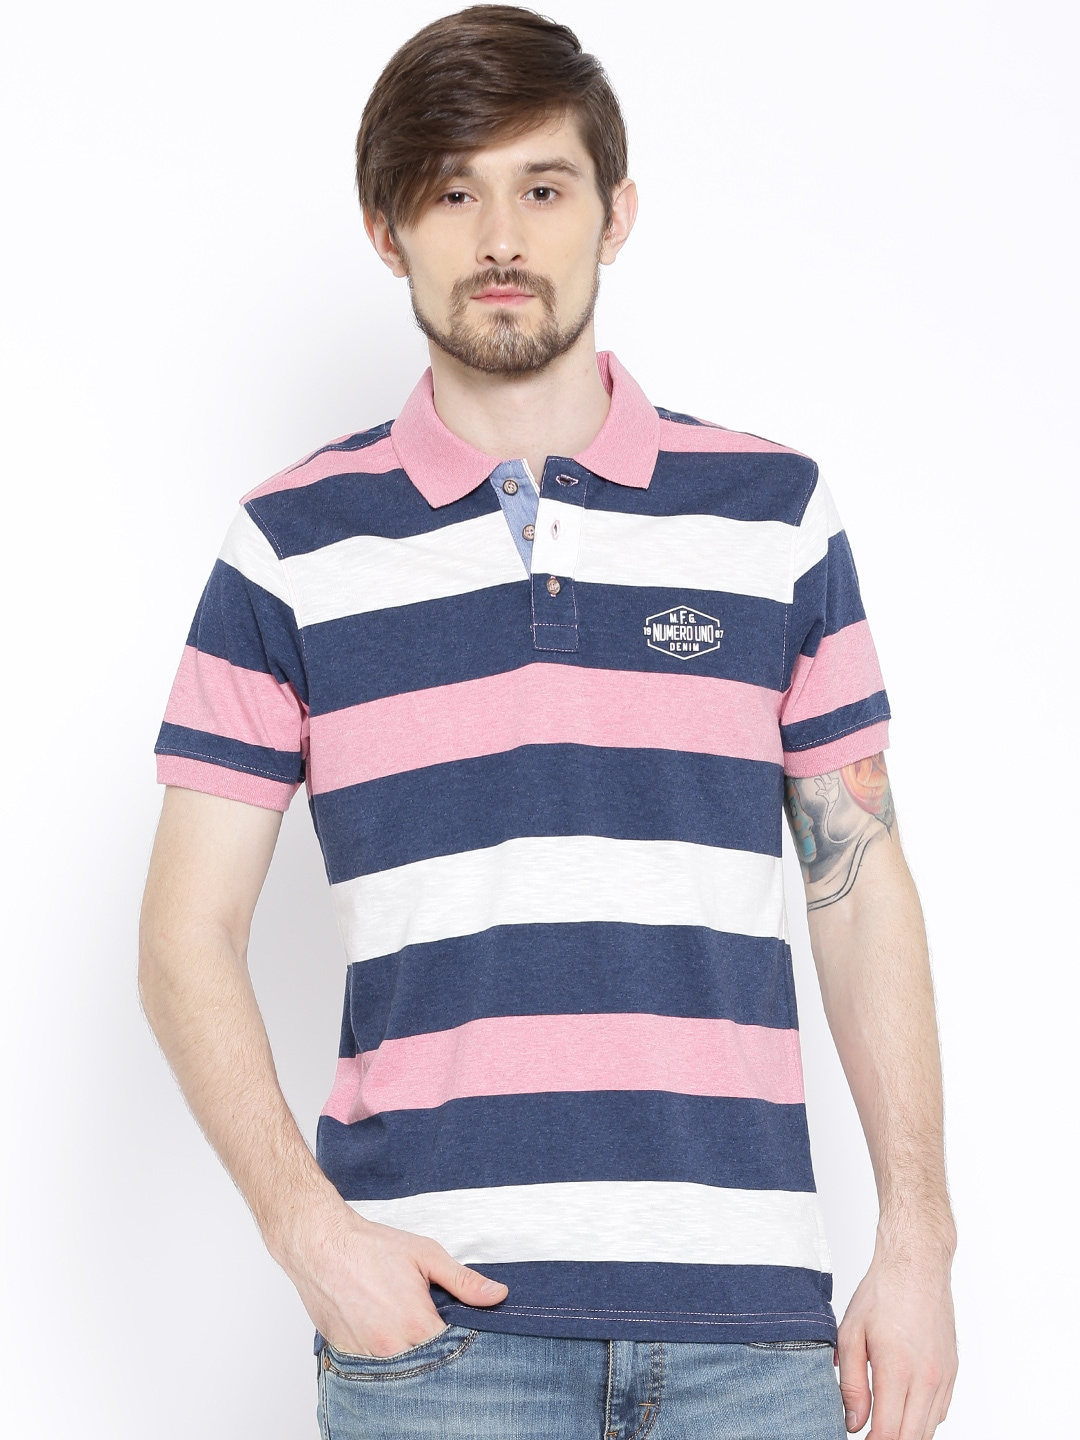 d3543446 Numero uno nmfnhz595-navy-mel Pink And Navy Striped Polo T Shirt- Price in  India